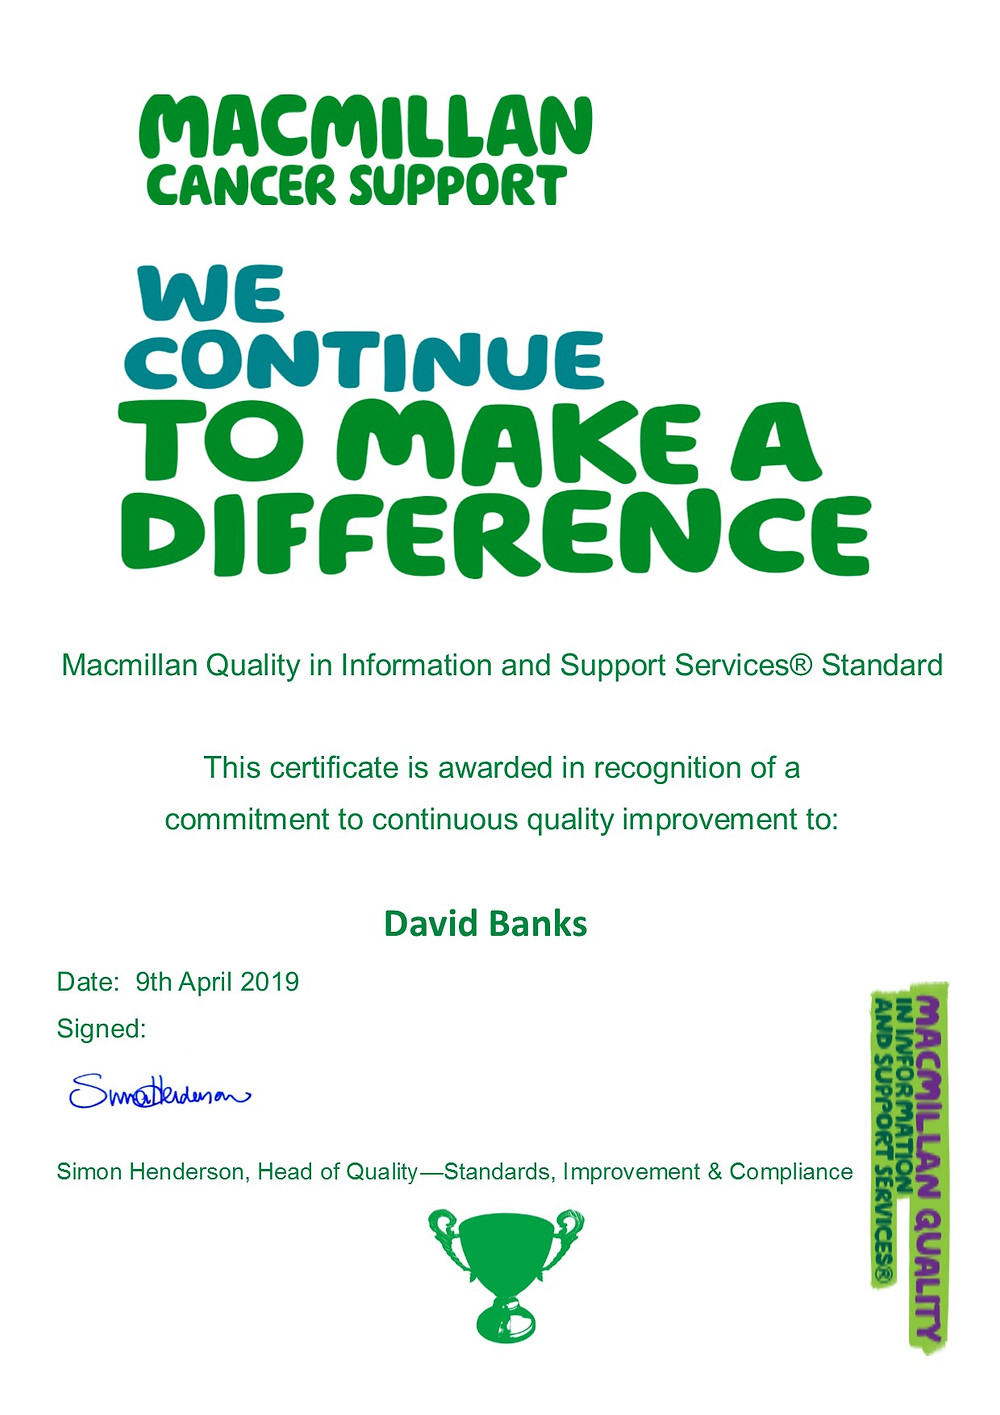 Macmillan Cancer Support MQUISS